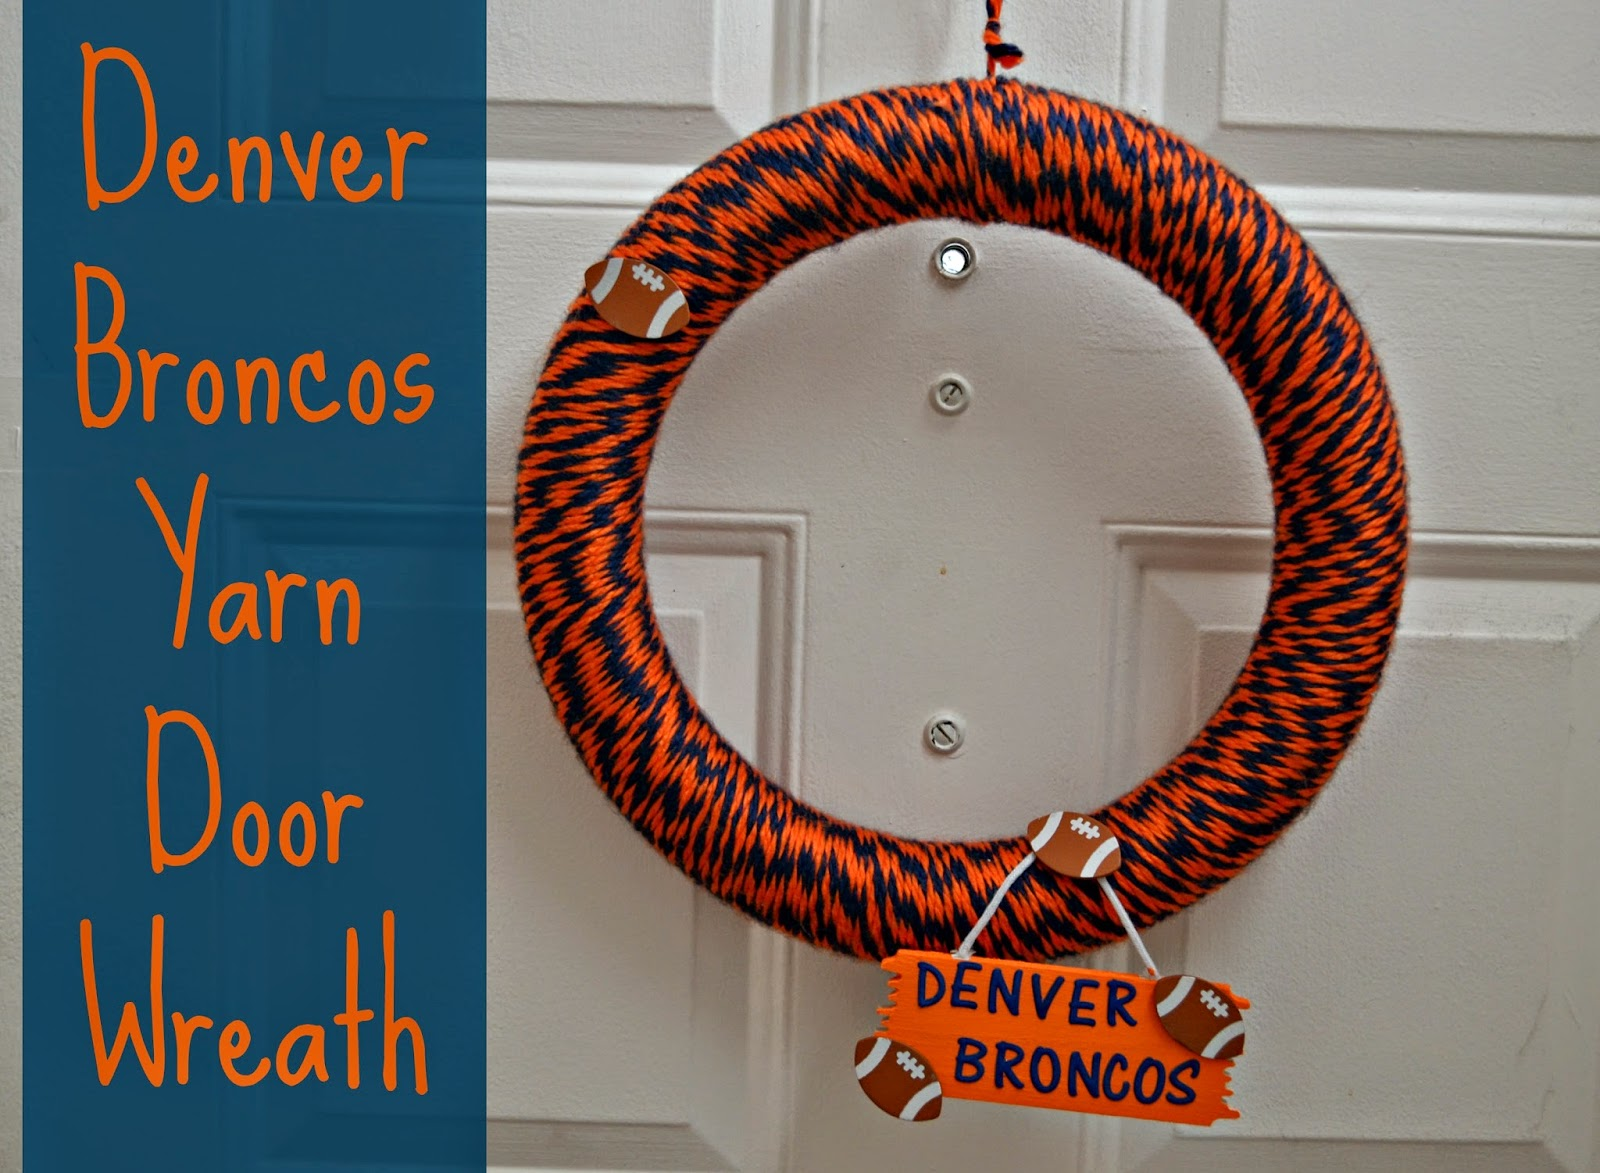 Football Door Wreath.  Denver Broncos door decorations.  Denver Broncos Door Wreath.  How to make a yarn wreath.  Door Wreath for football decorations.  NFL decorations.